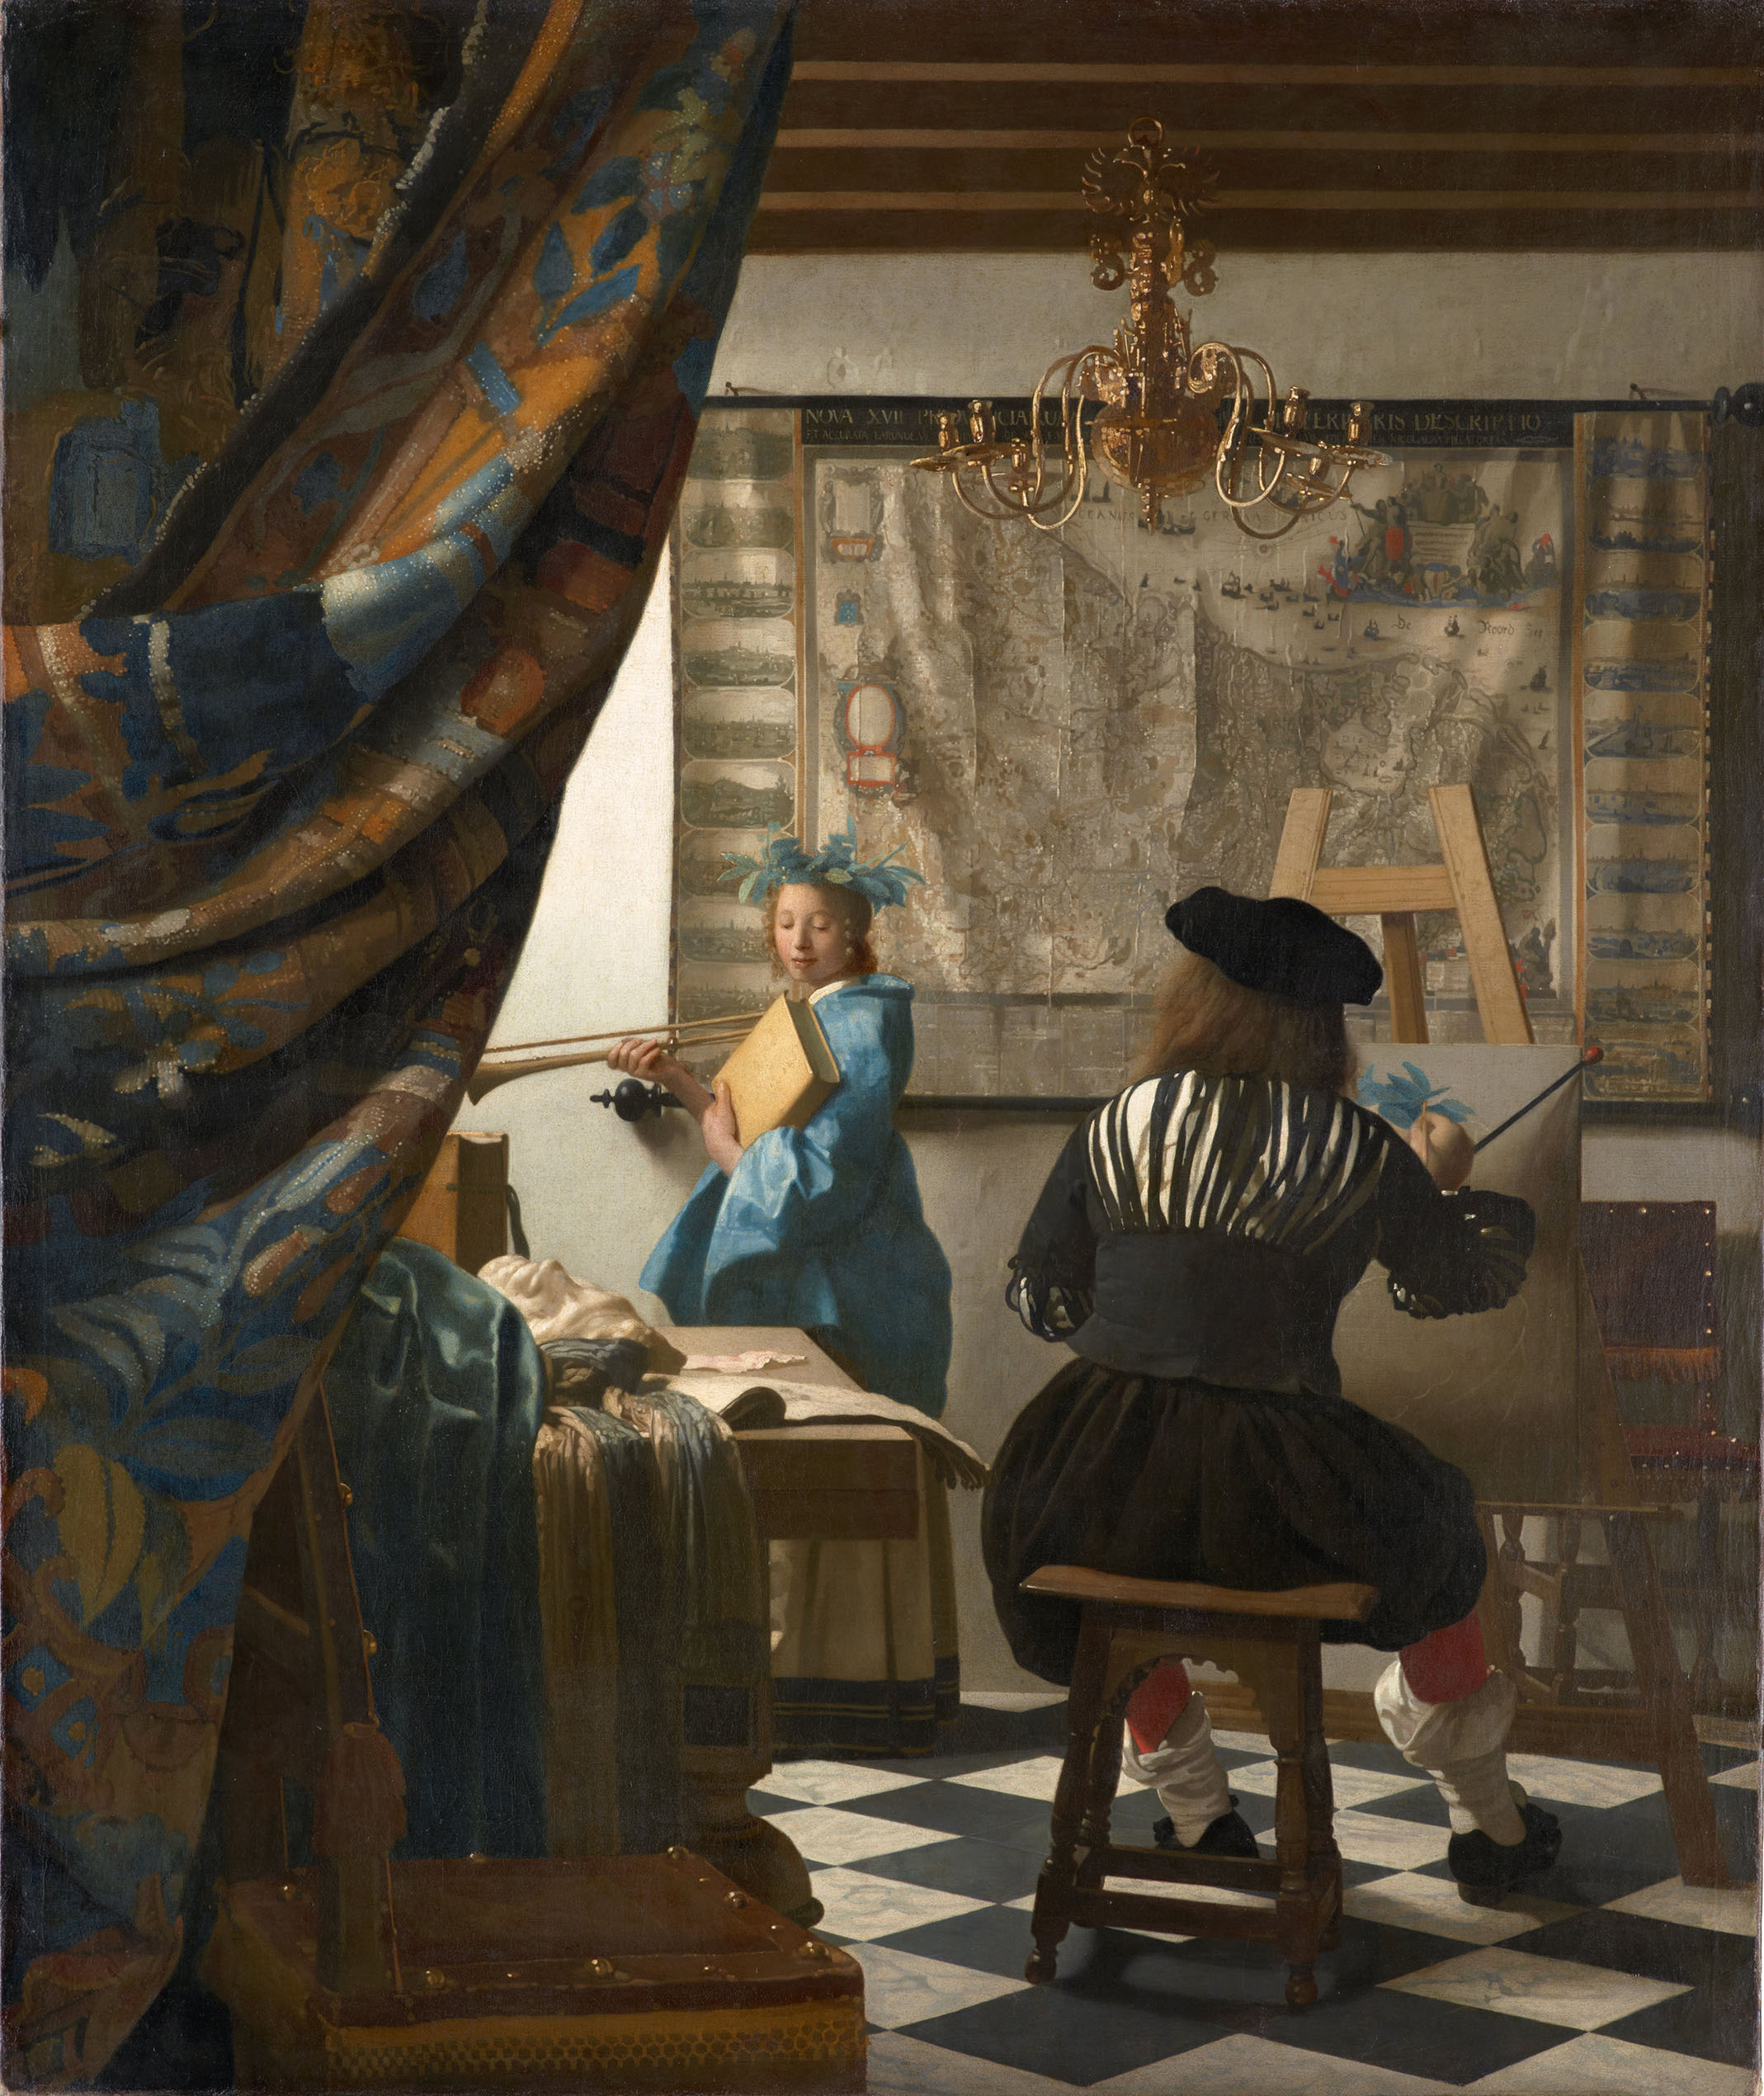 Jan Vermeer, Art of Painting, 1662 - 1668.